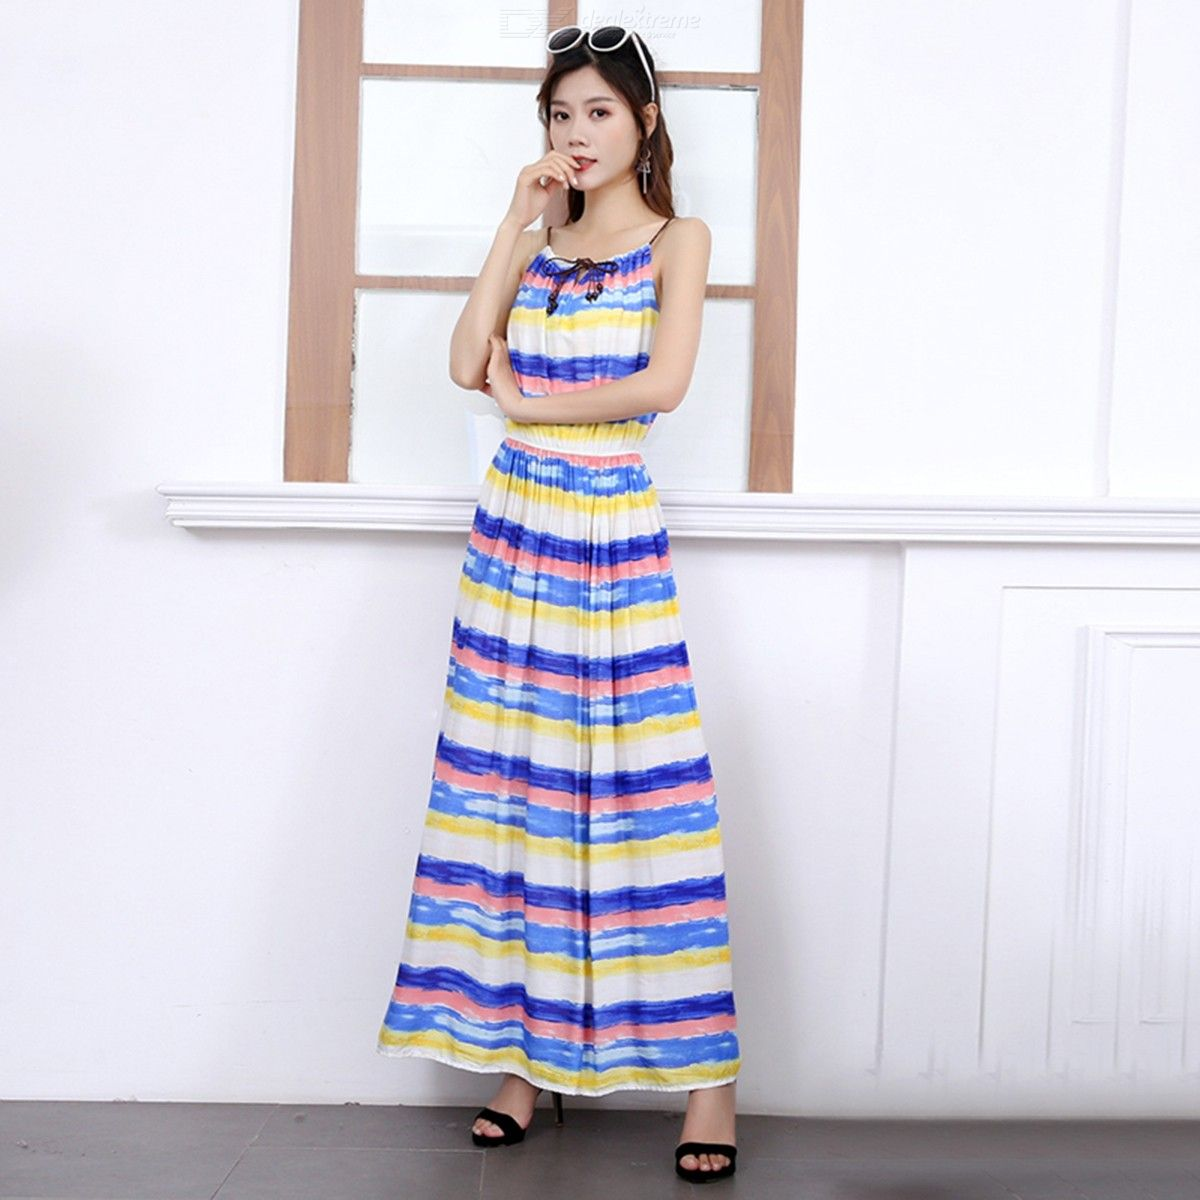 02478d08a7 Womens Summer Boho Floral Dresses Sleeveless Spaghetti Strap Maxi Dress - Free  shipping - DealExtreme